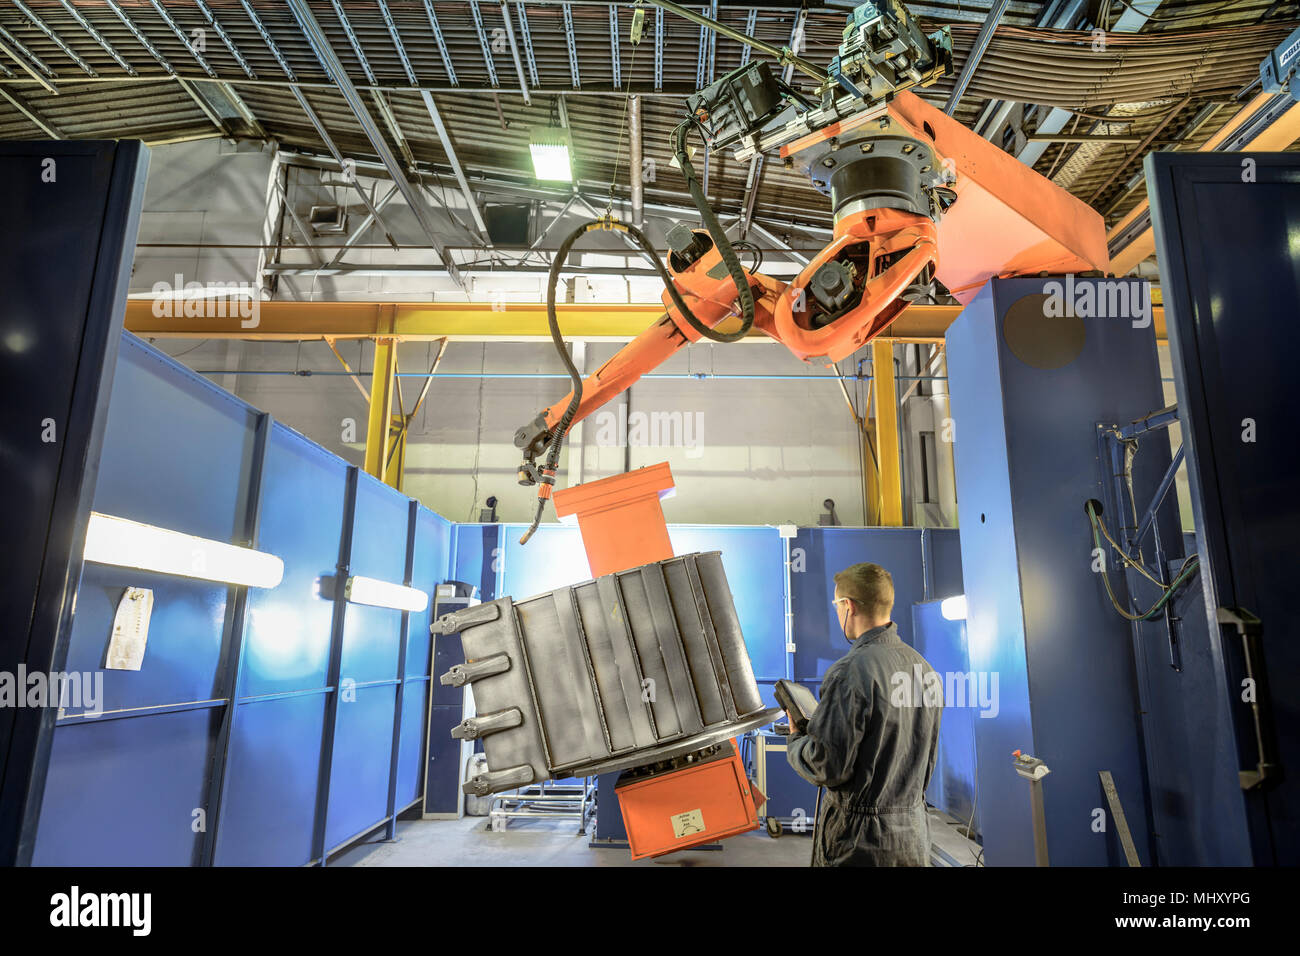 Engineer with robot welder in engineering factory - Stock Image